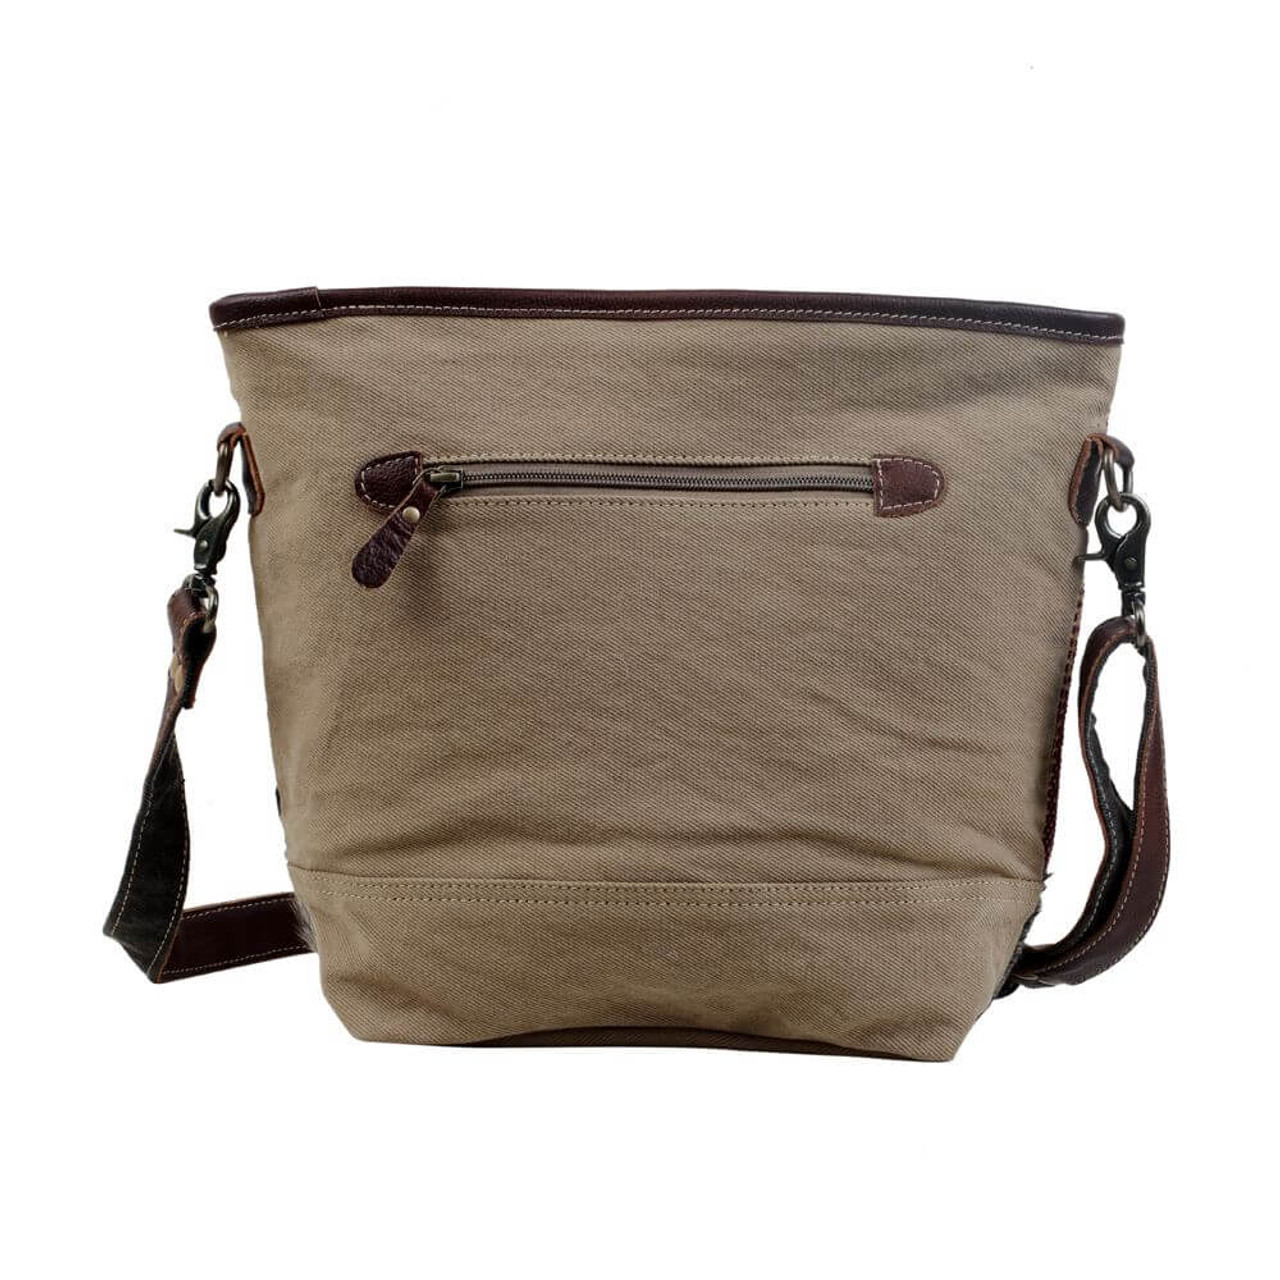 This shoulder bag has bands of pattern interlaced to form a piece with an artistic vibe. The grey cowhide portion used at the bottom gives it a sturdy base. Canvas back and bottom, zipper pockets on front and back; adjustable/removable shoulder strap; zipper close at top; interior is fully lined and has one zipper pocket and two slip pockets